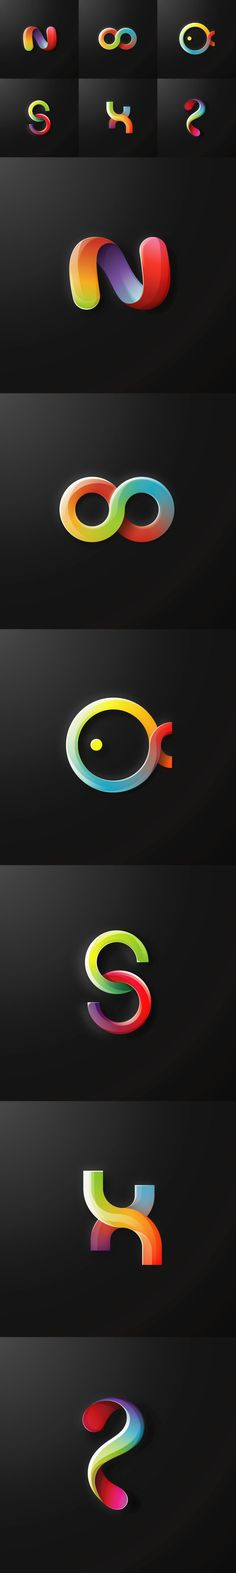 Collection of 6 free gradient logo that made with a high level of graphic standards. File size is 300 MB in .ai cs6 vector format. So enjoy guys free stuff and don't forget to appreciate and share this piece of art with other.Instructions how to downloa…